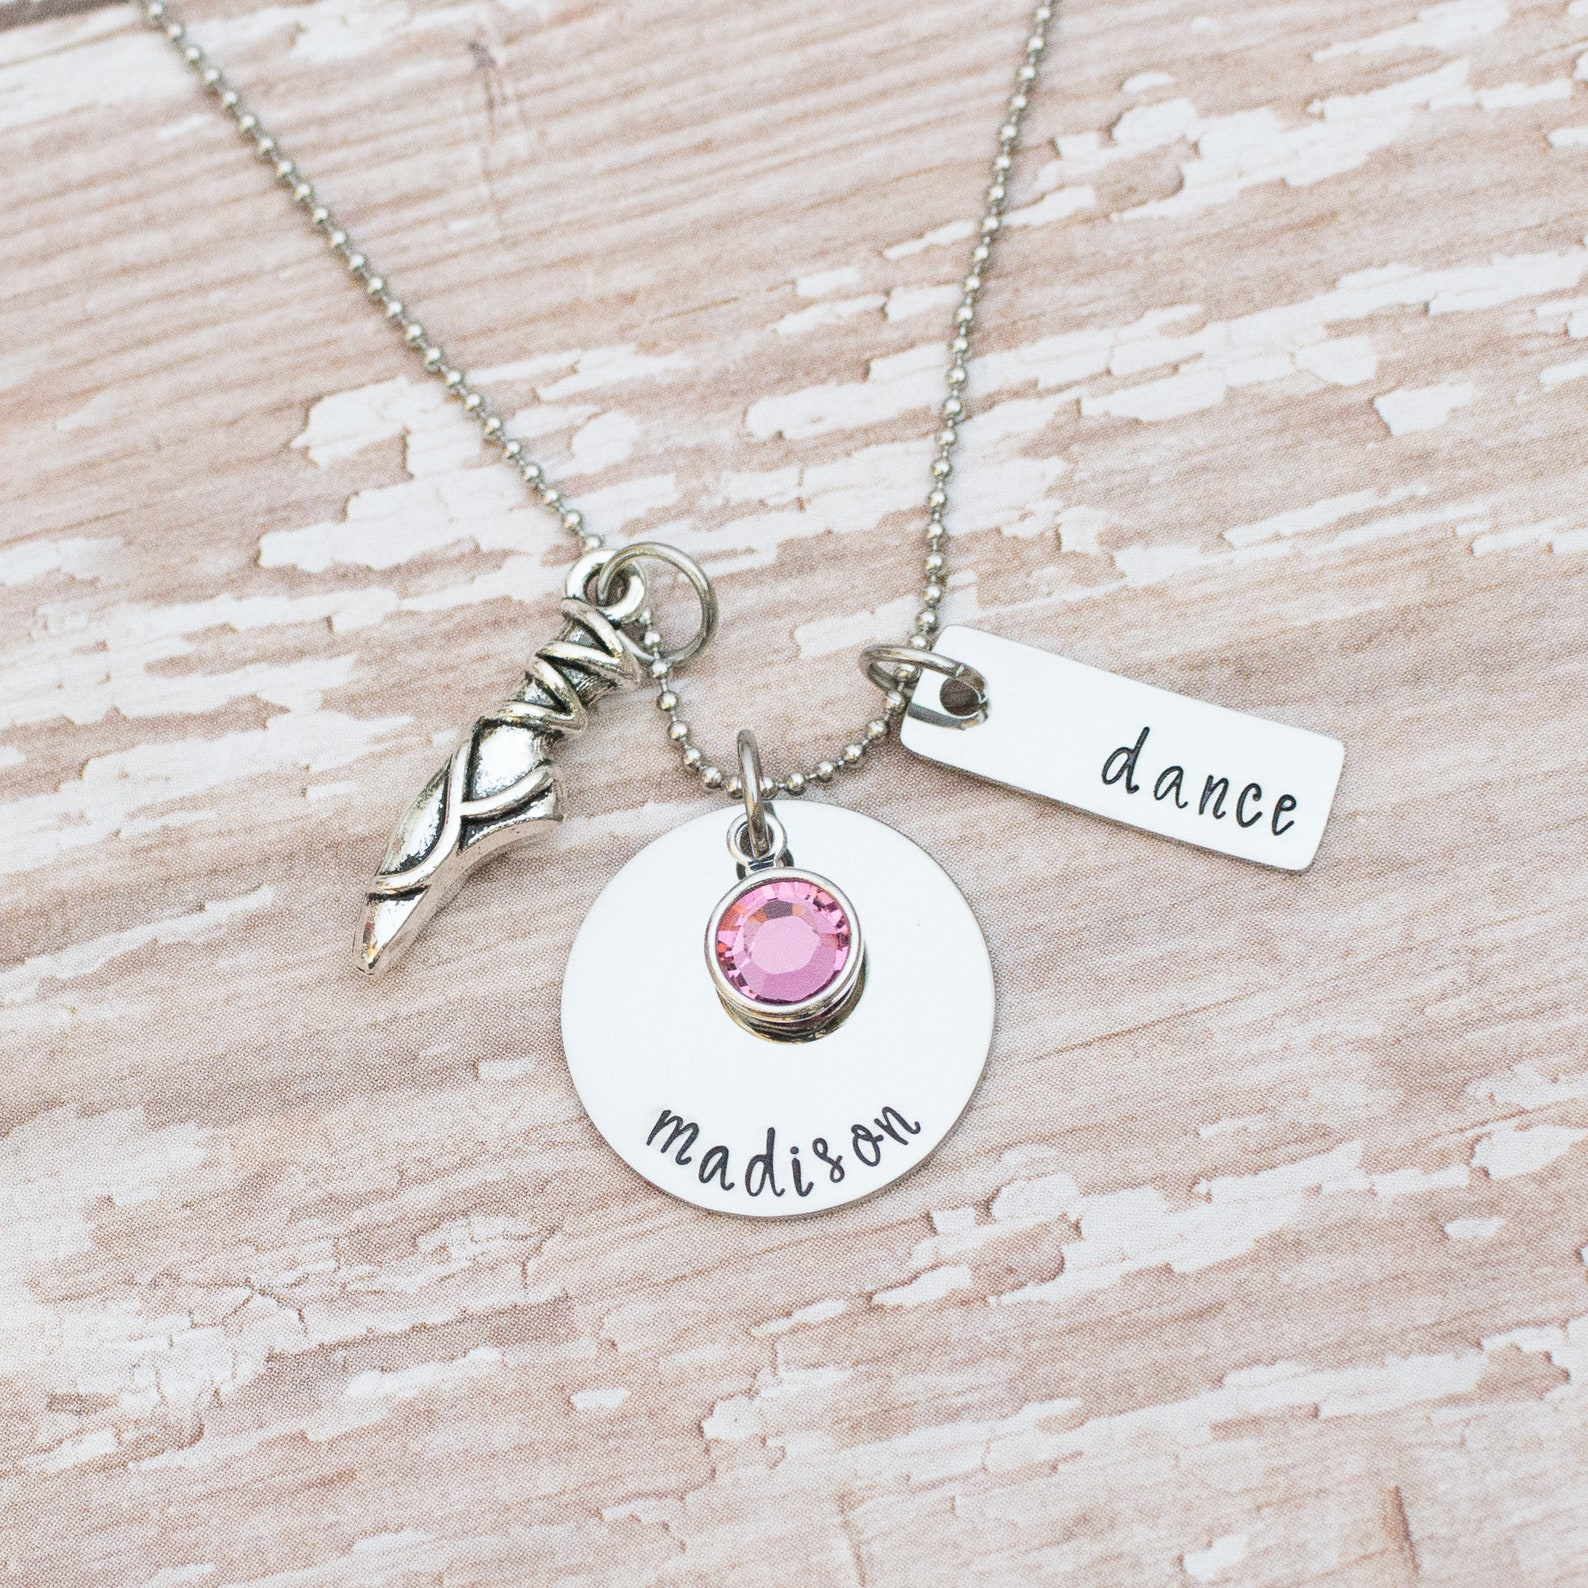 personalized ballet necklace - gift for dancer - ballet shoe necklace - dancer necklace - birthstone - ballet gift - hand stampe